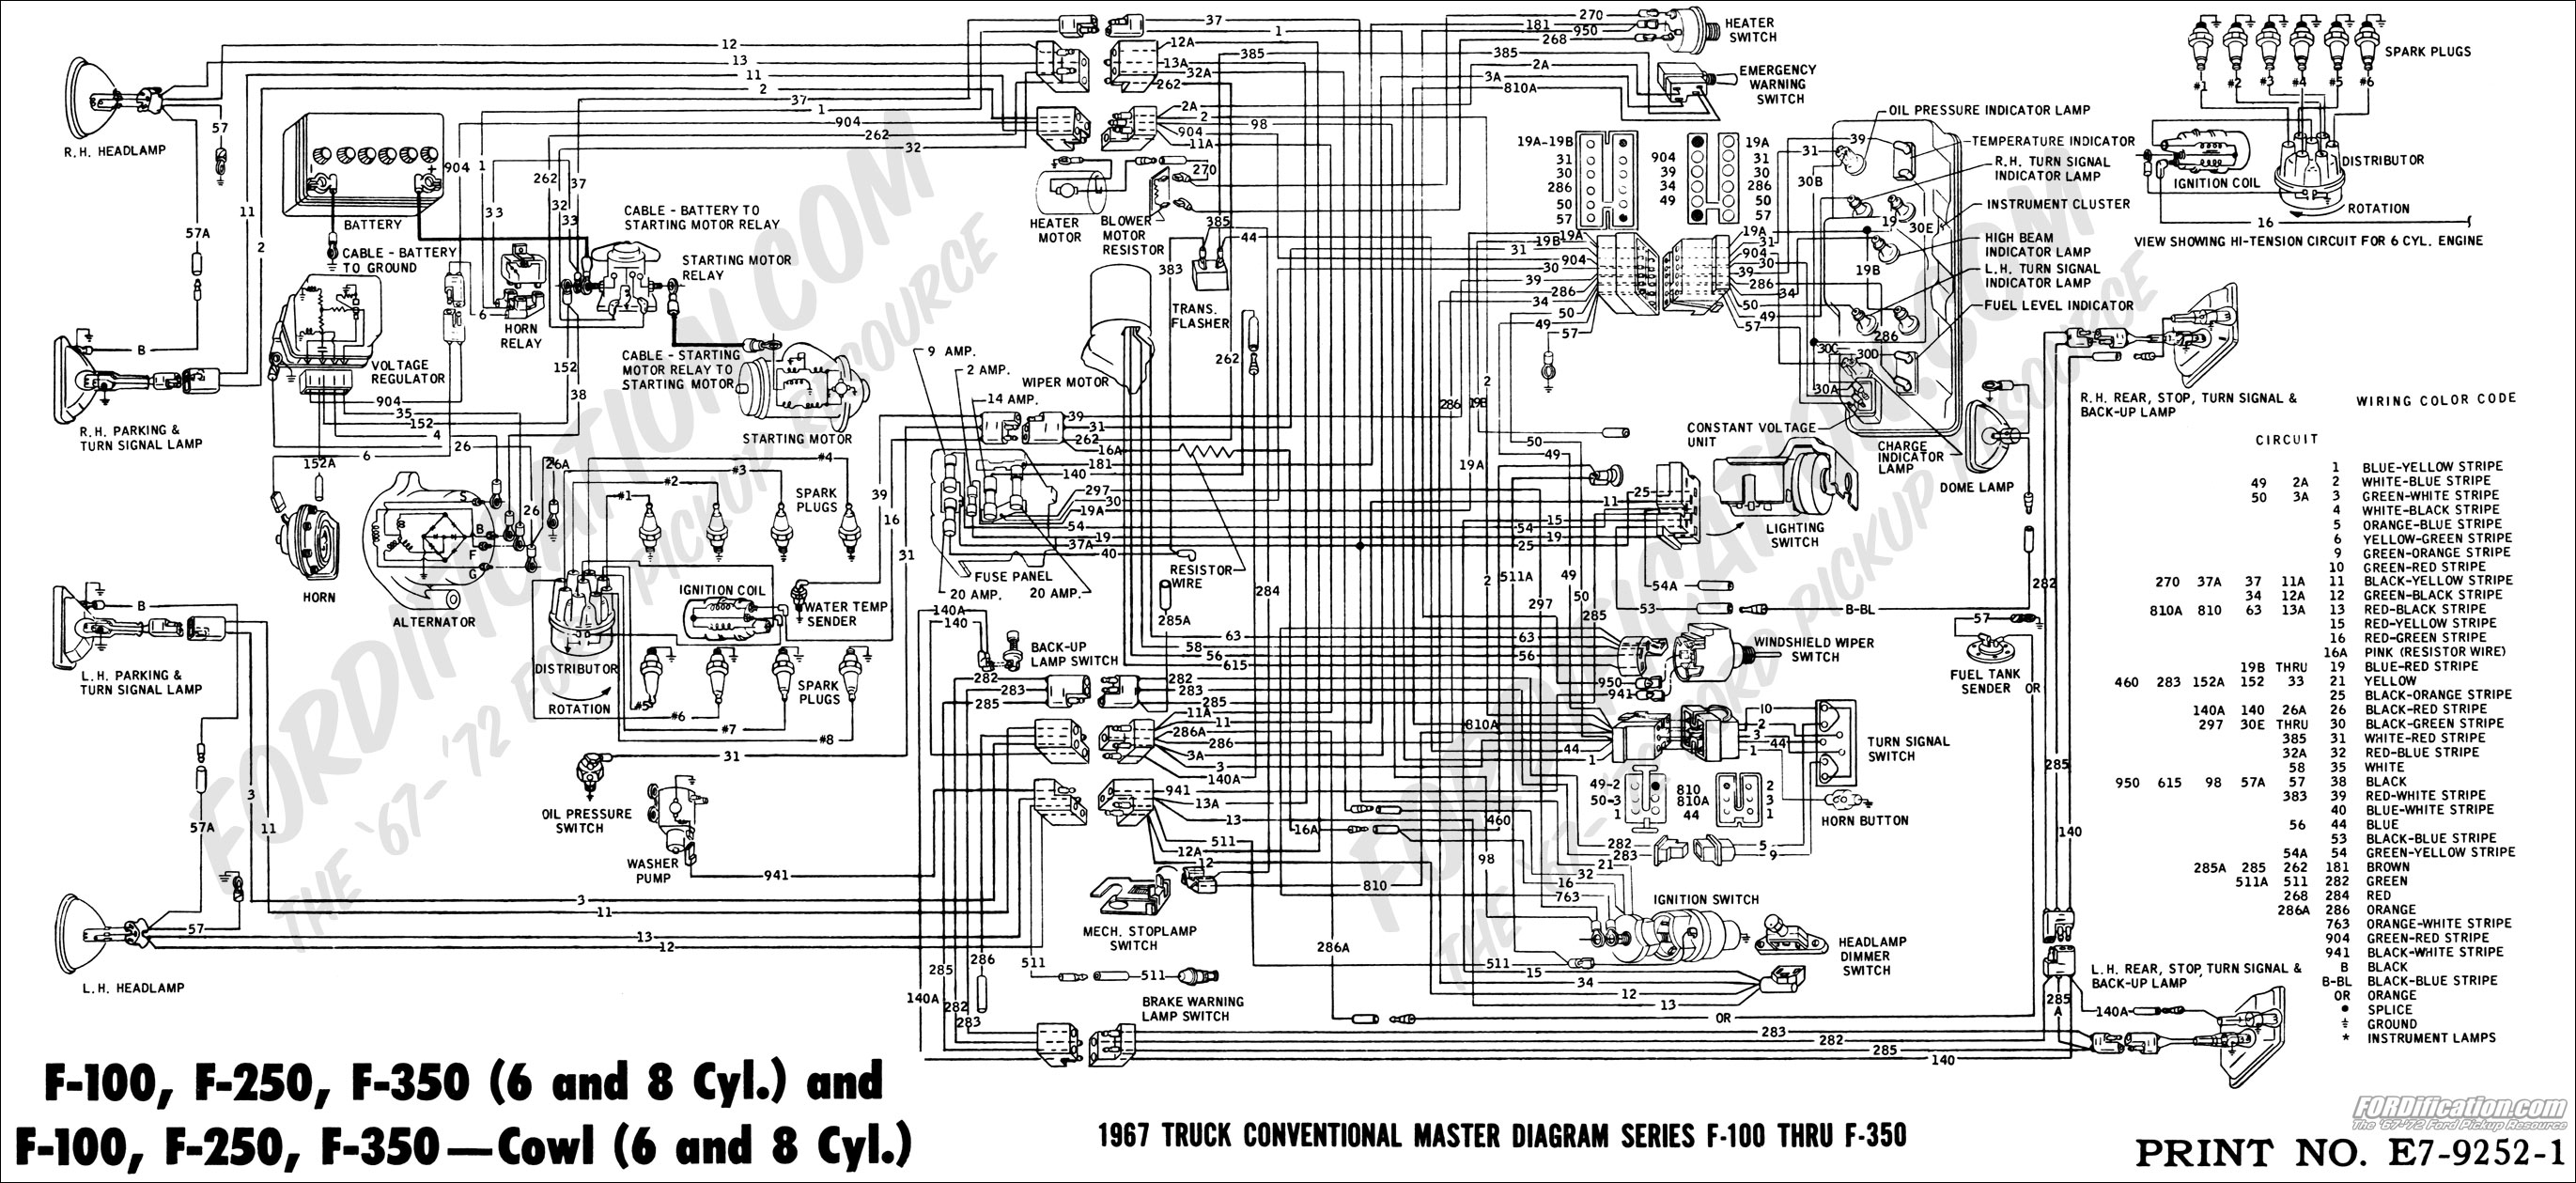 ford bronco ignition wiring diagram ford bronco 1994 ford bronco ignition wiring diagram 2006 ford f150 ignition wiring diagram wire diagram